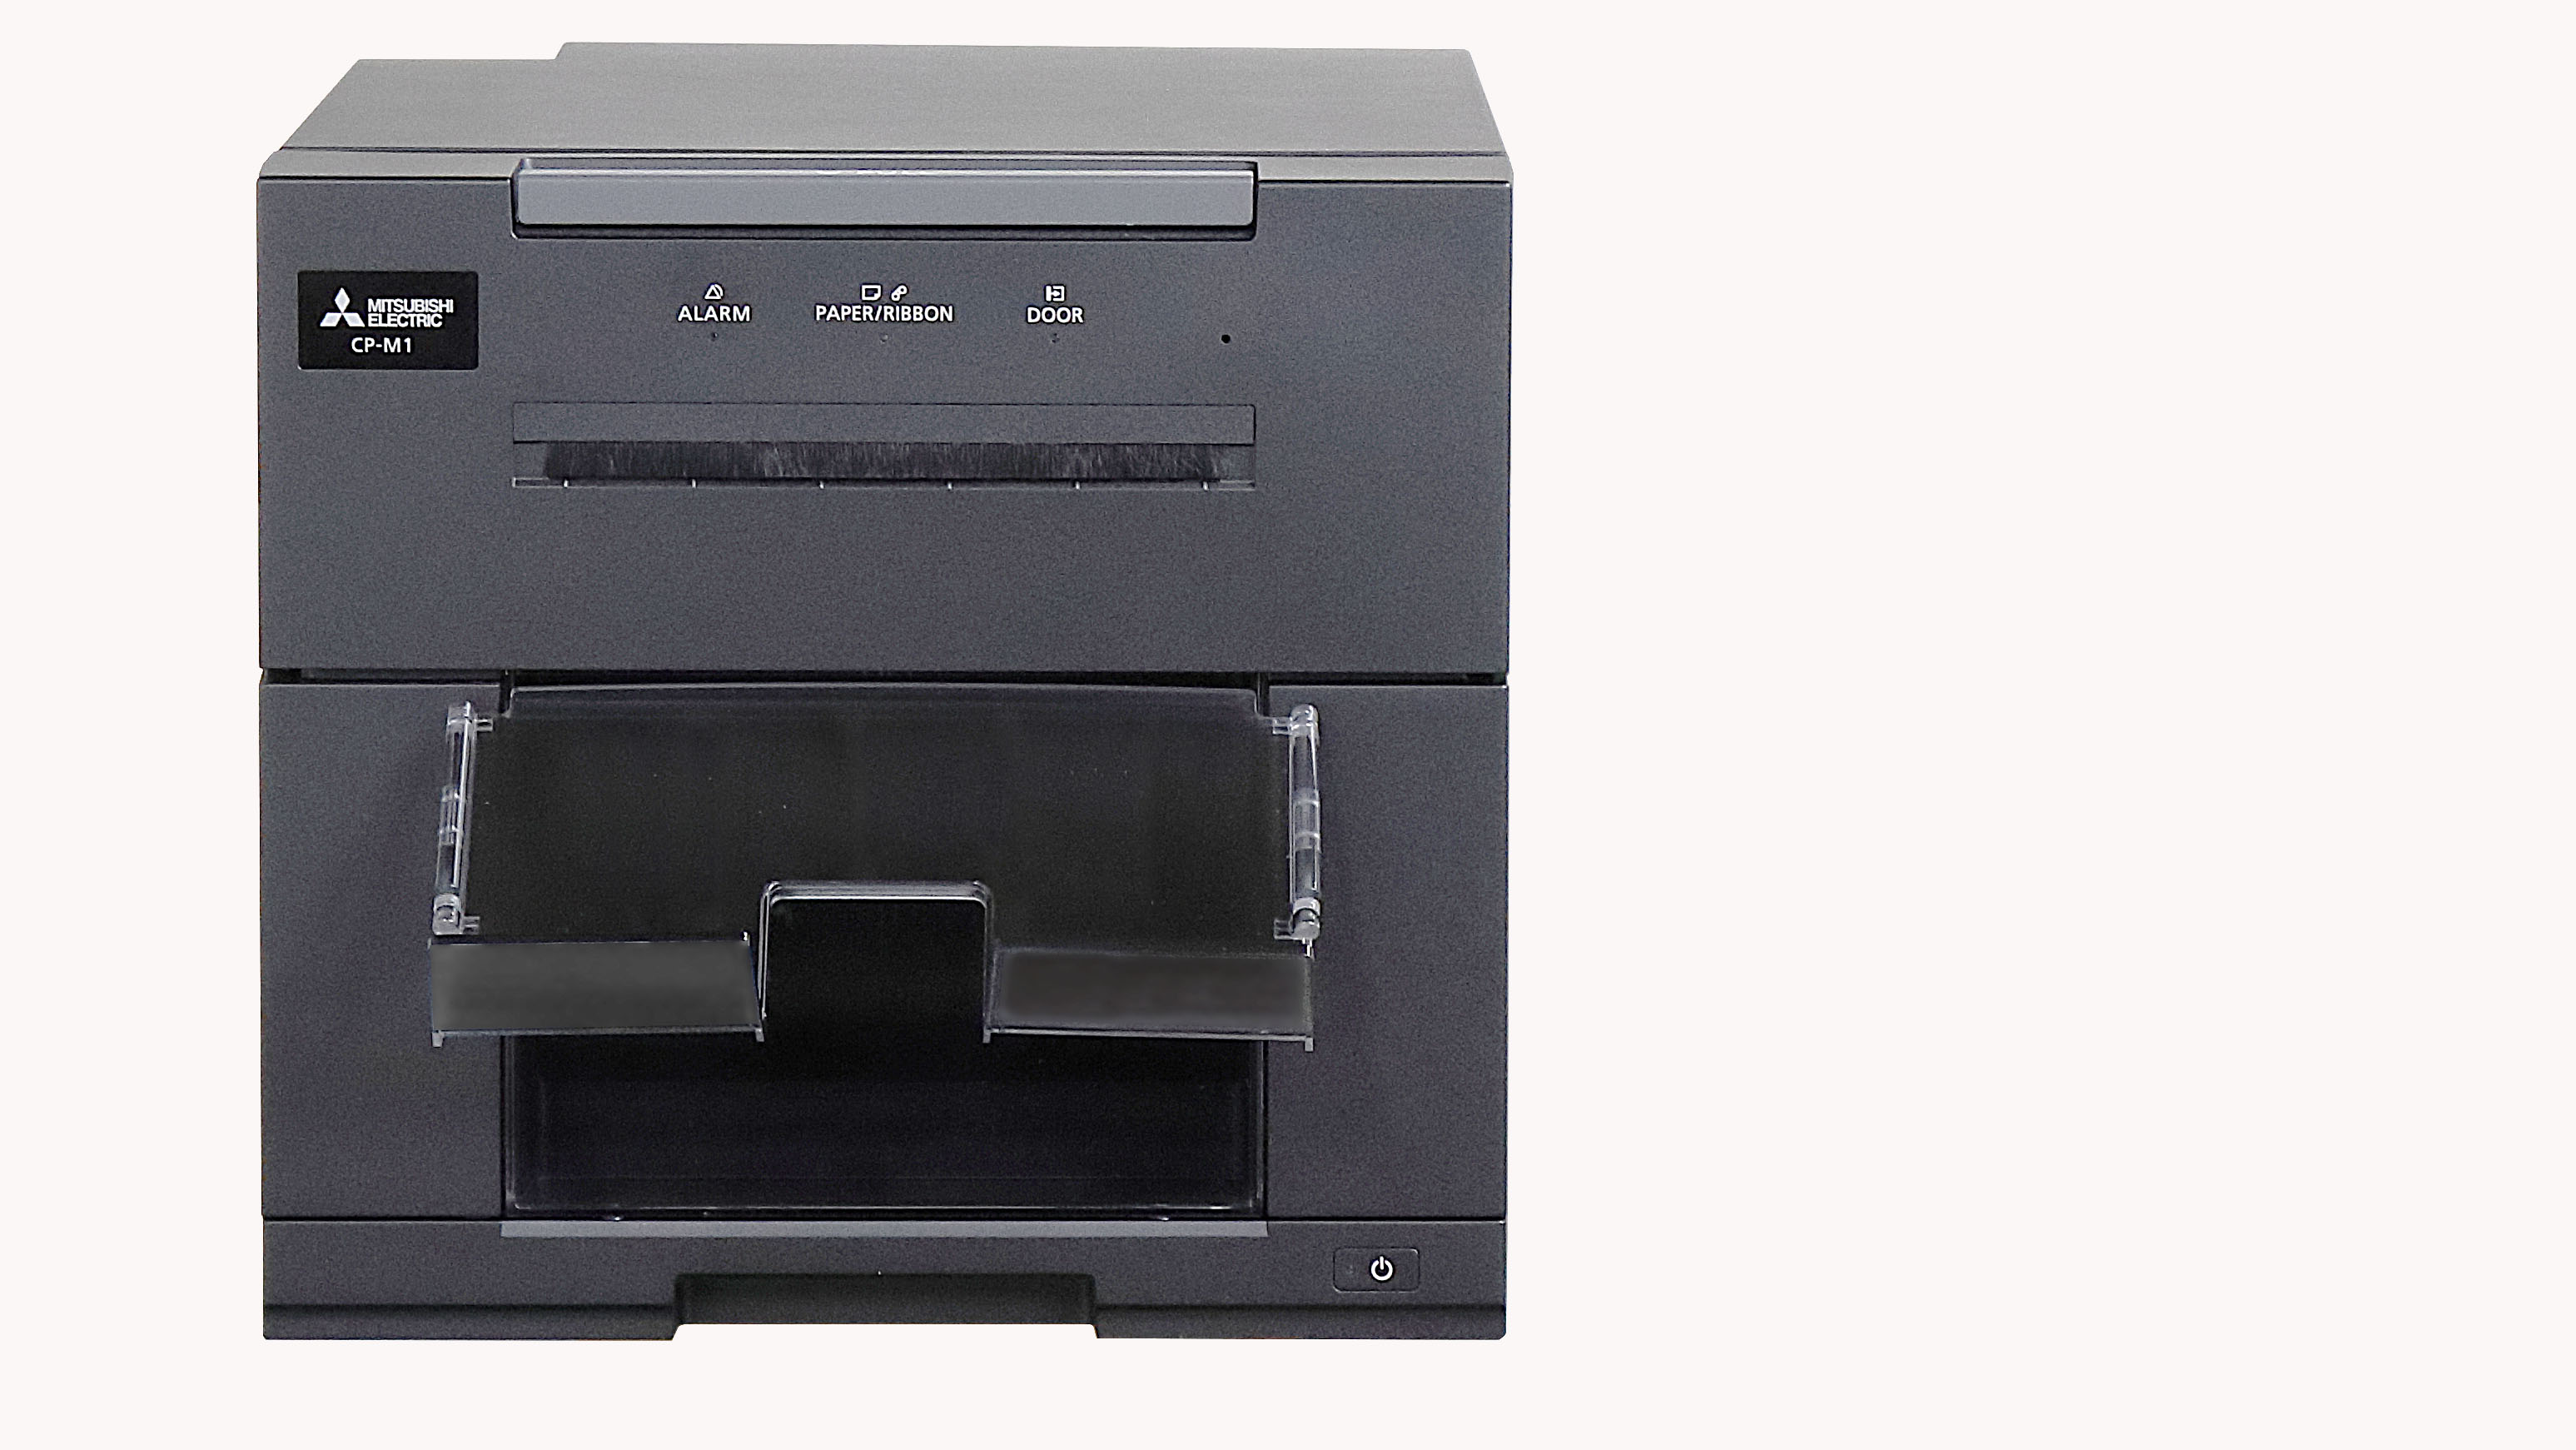 Mitsubishi CP-M1E printer is ready to cut waste at any event | Digital Camera World